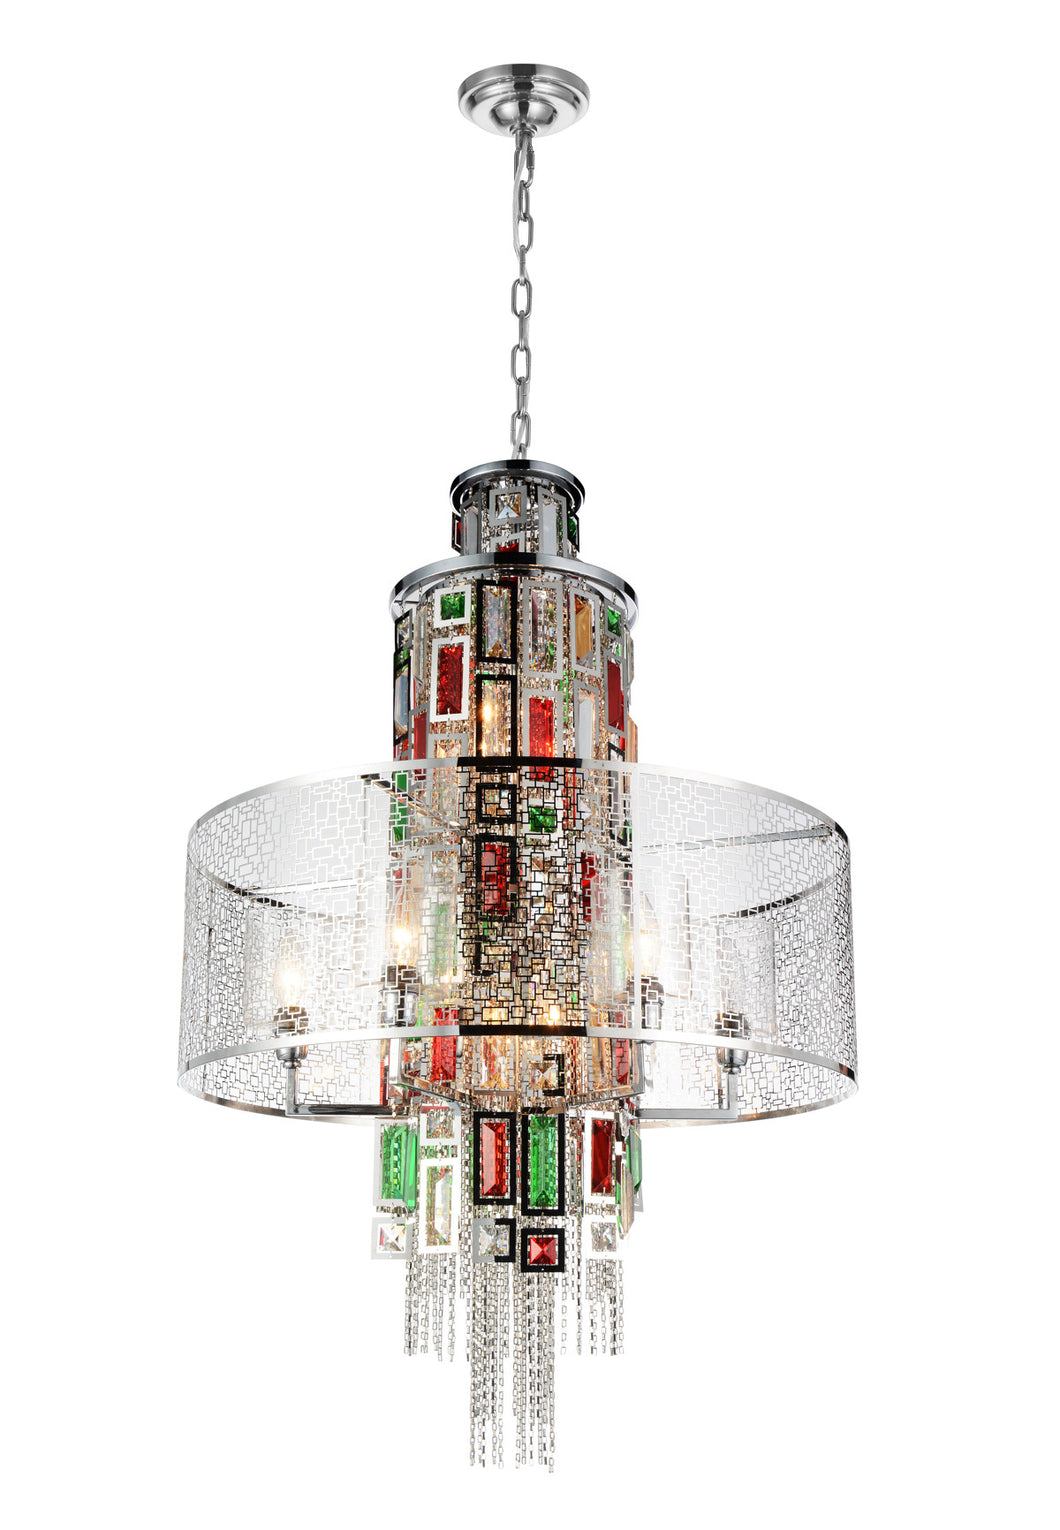 11 Light Drum Shade Chandelier with Chrome finish